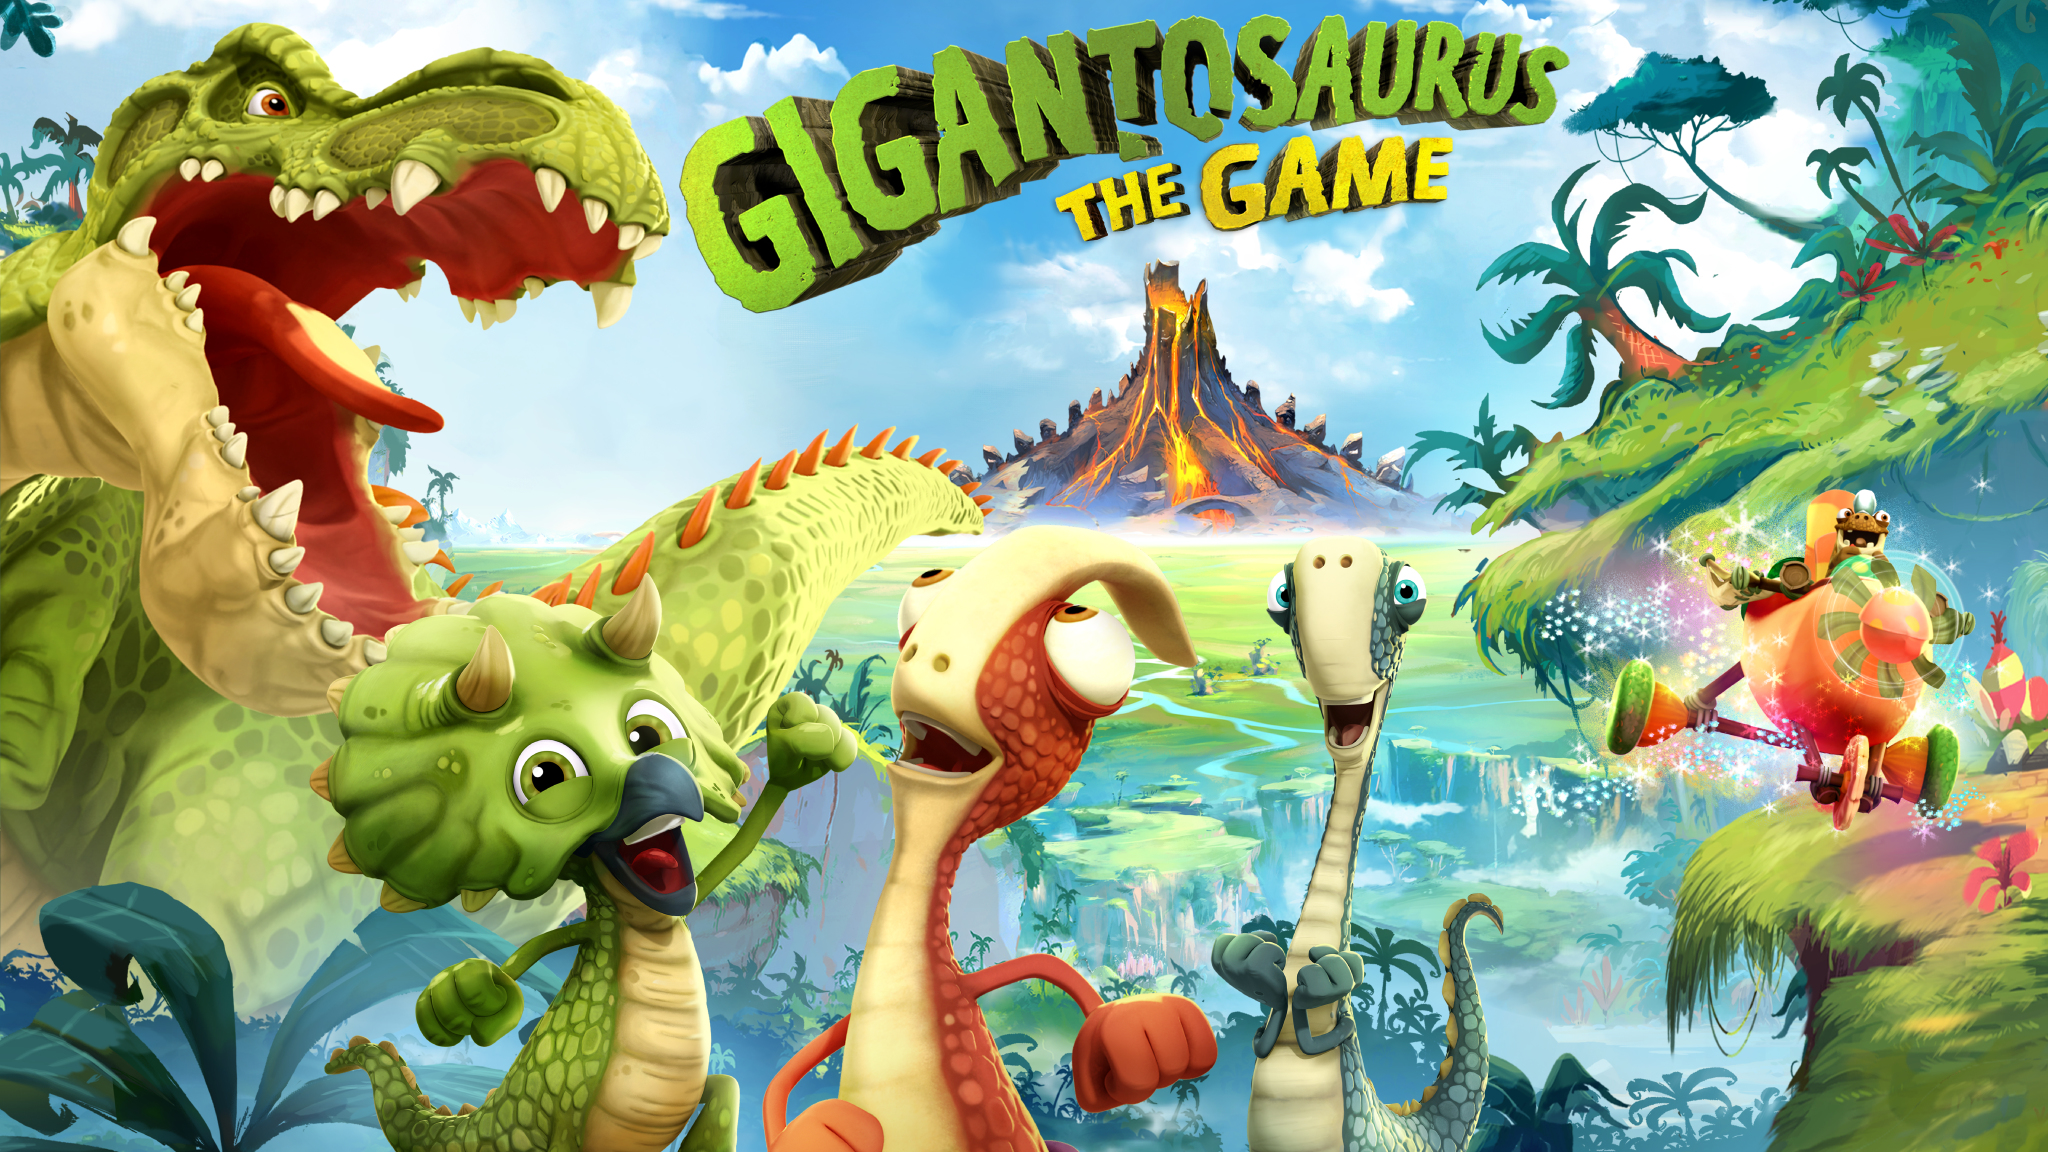 Gigantosaurus: The Game artwork